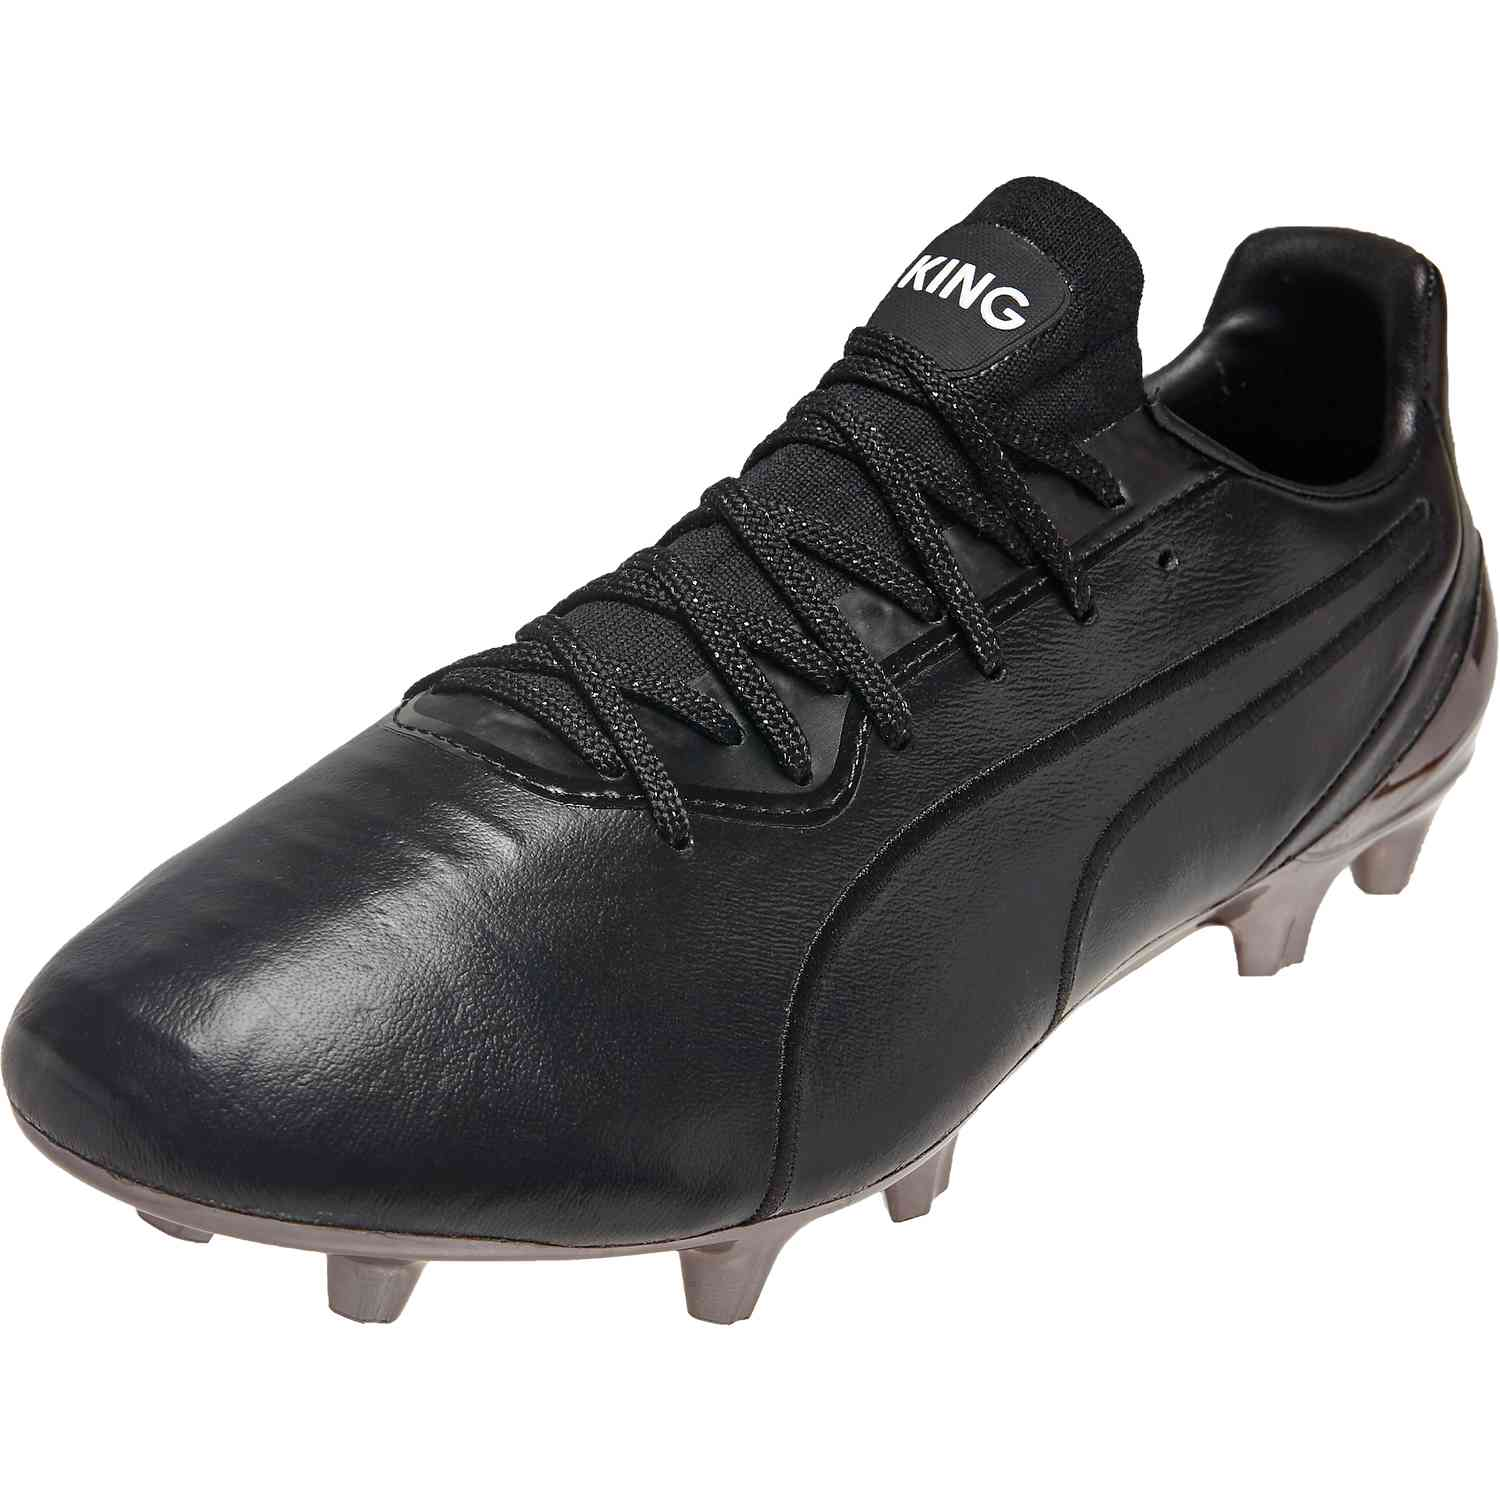 43db83ce1 Puma King Platinum FG - Black - SoccerPro